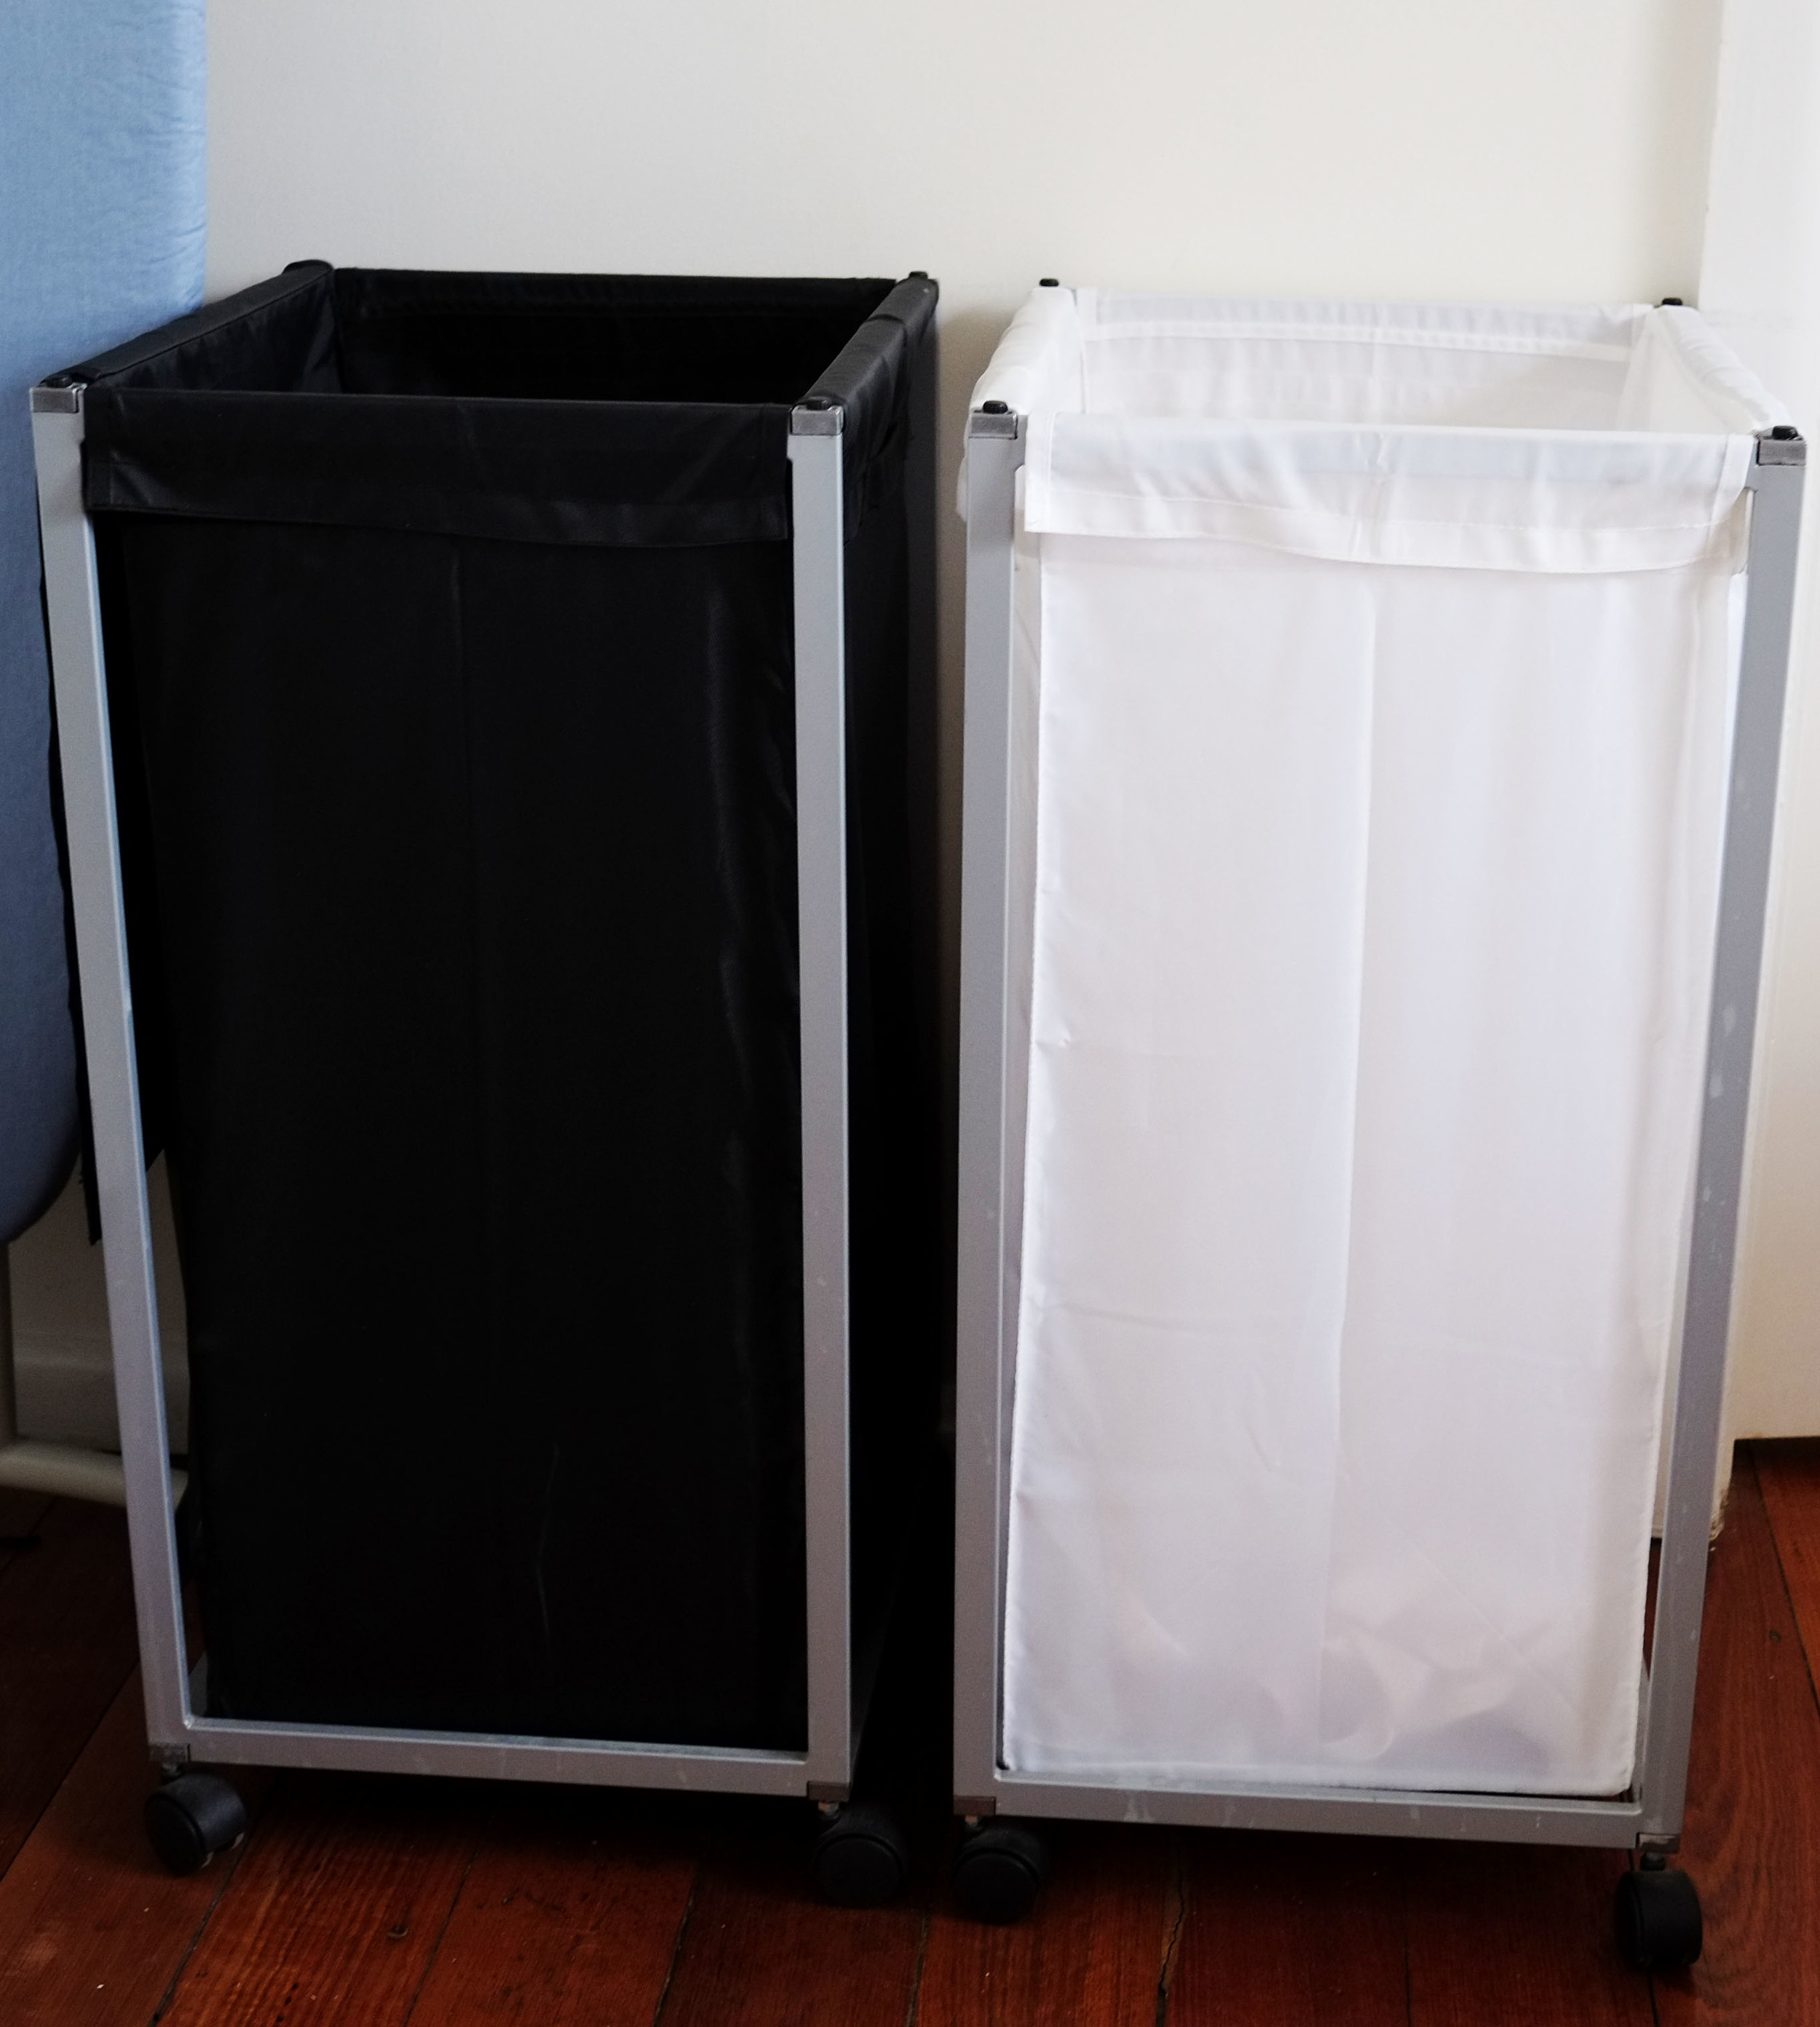 Rolling laundry hampers to separate and organise clothes in the laundry - having them on castor wheels means you can pull them over to the washing machine and then store them out of sight.